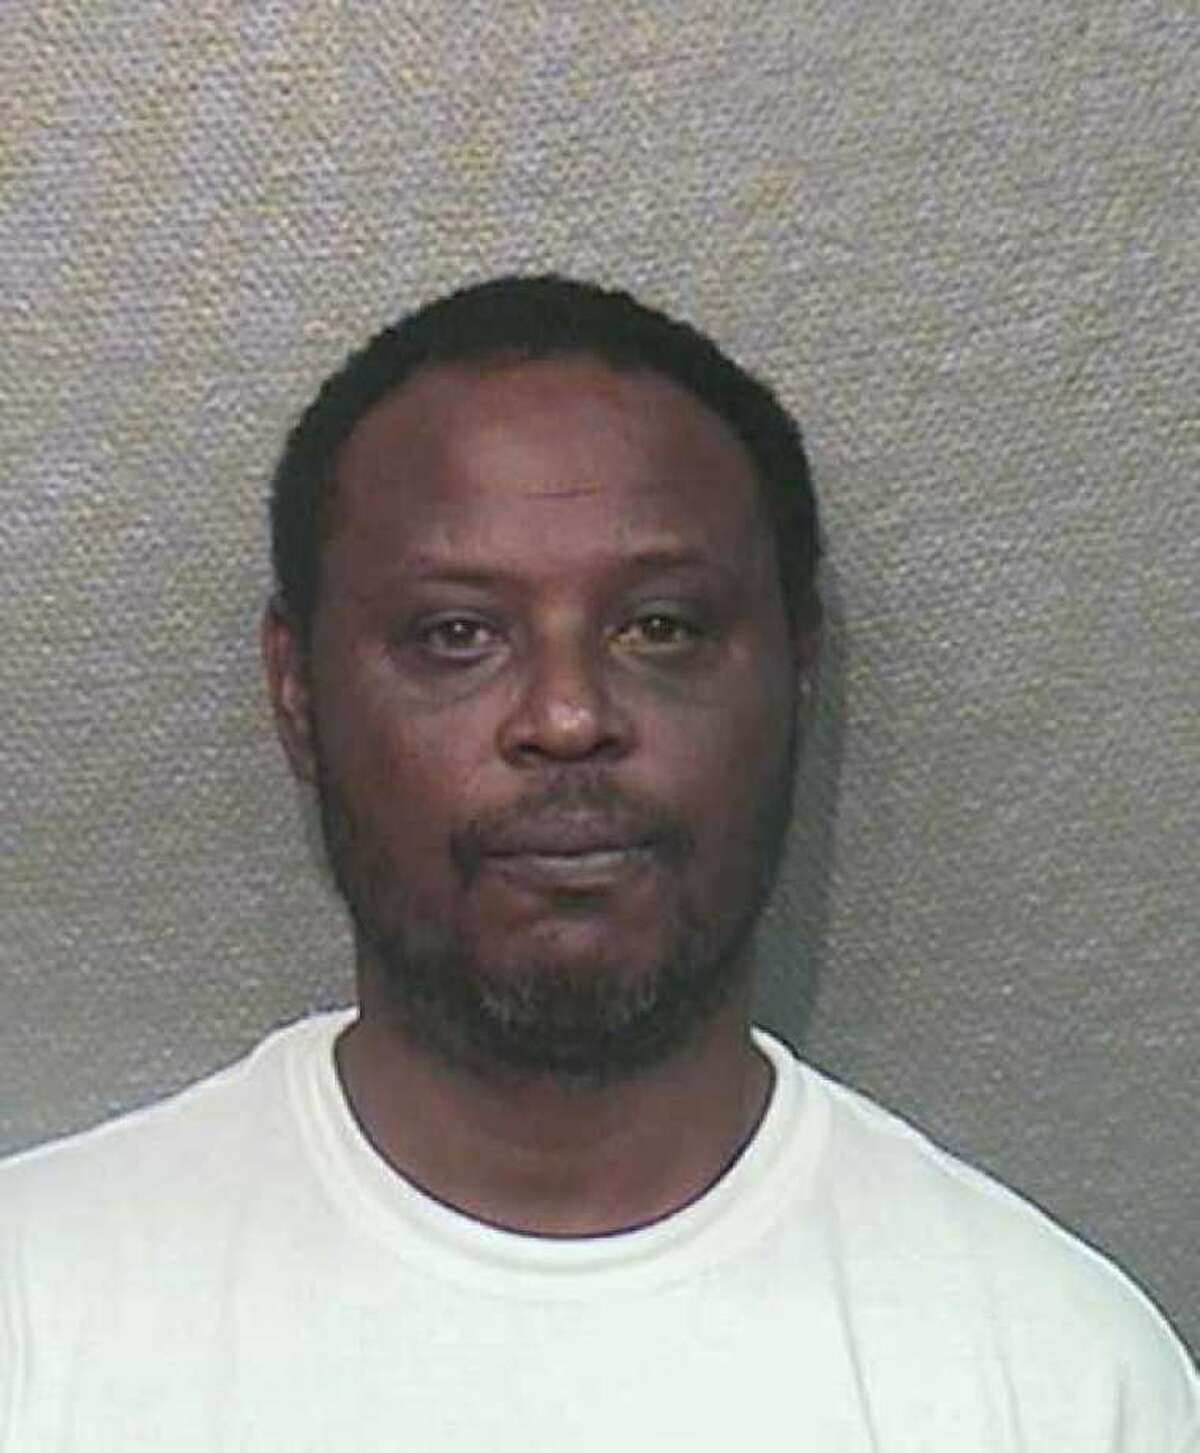 Brent Wayne Justice, 56 (DOB: 7-7-61), of Houston, was charged with felony cruelty to non-livestock animals.